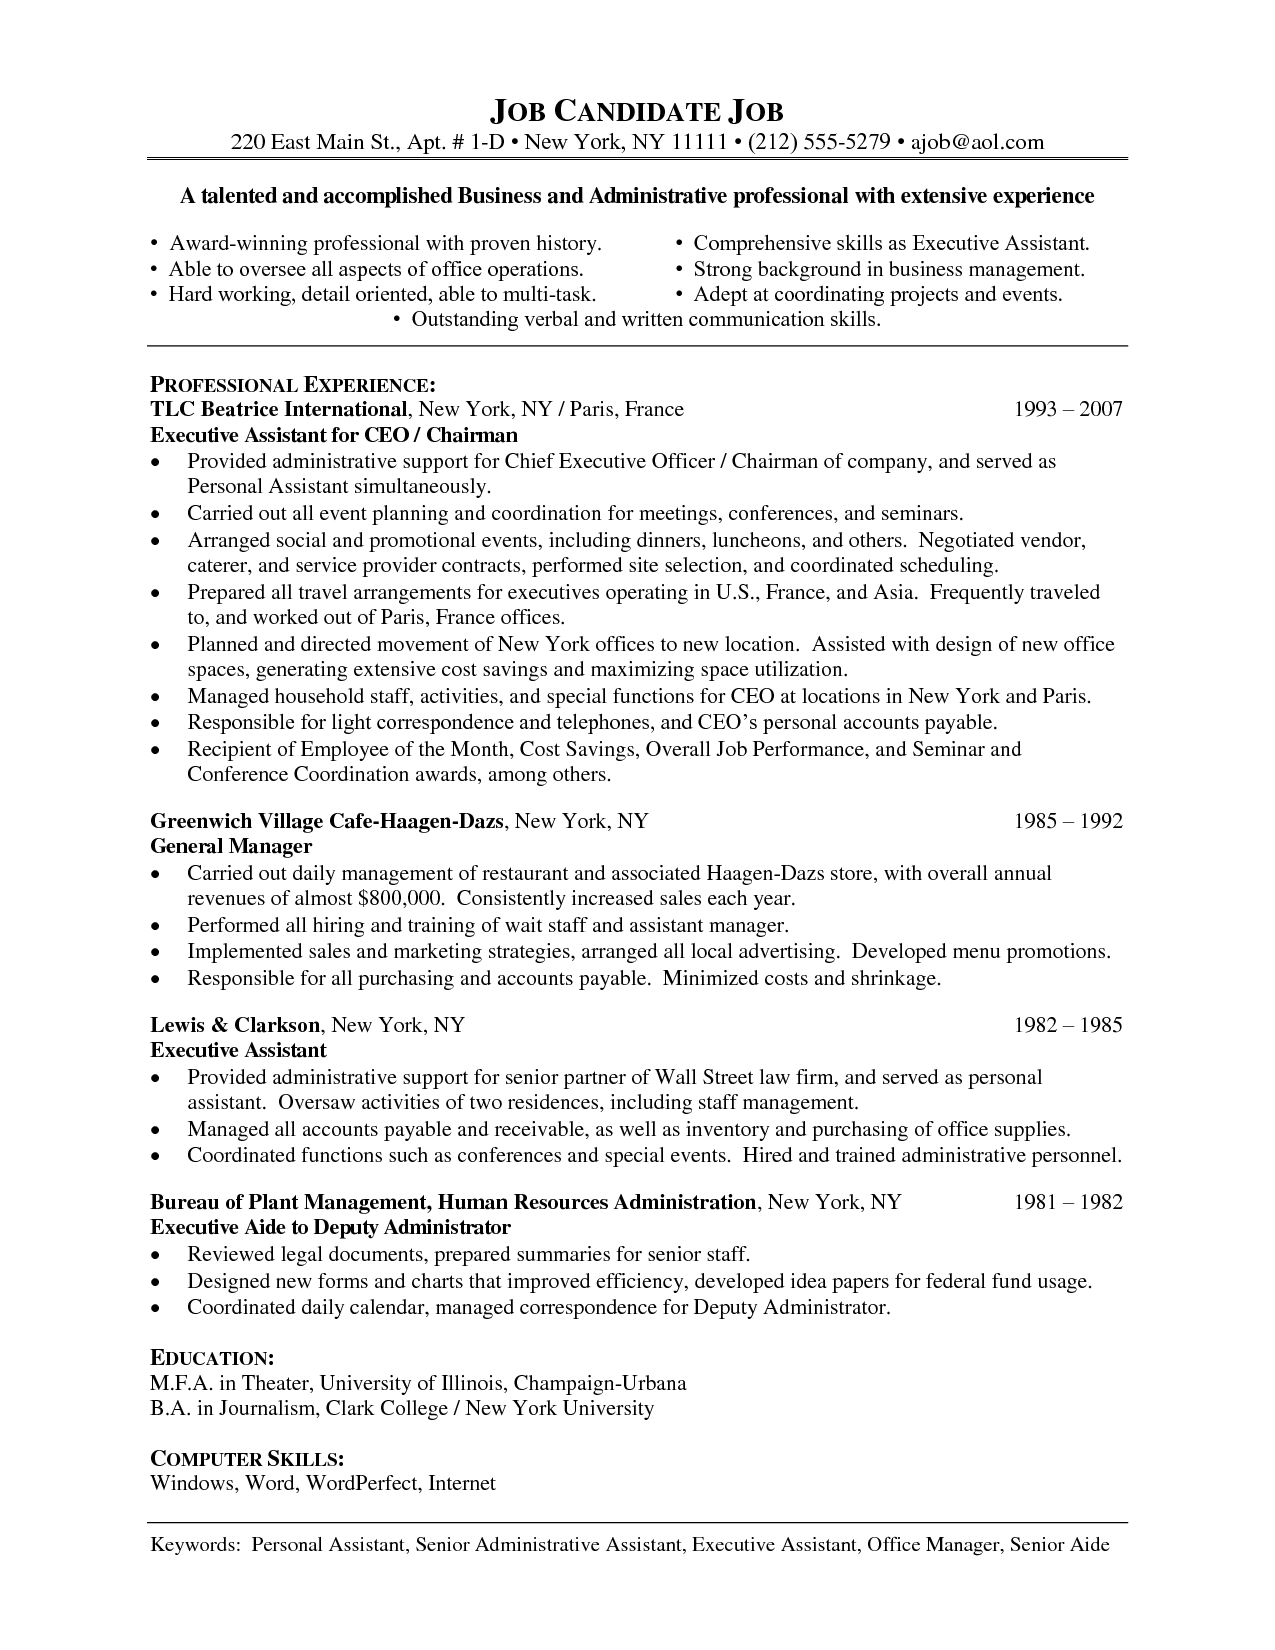 Administrative Assistant Functional Resume Stunning Office Admin Resume Sample System Administrator Linux Professional .